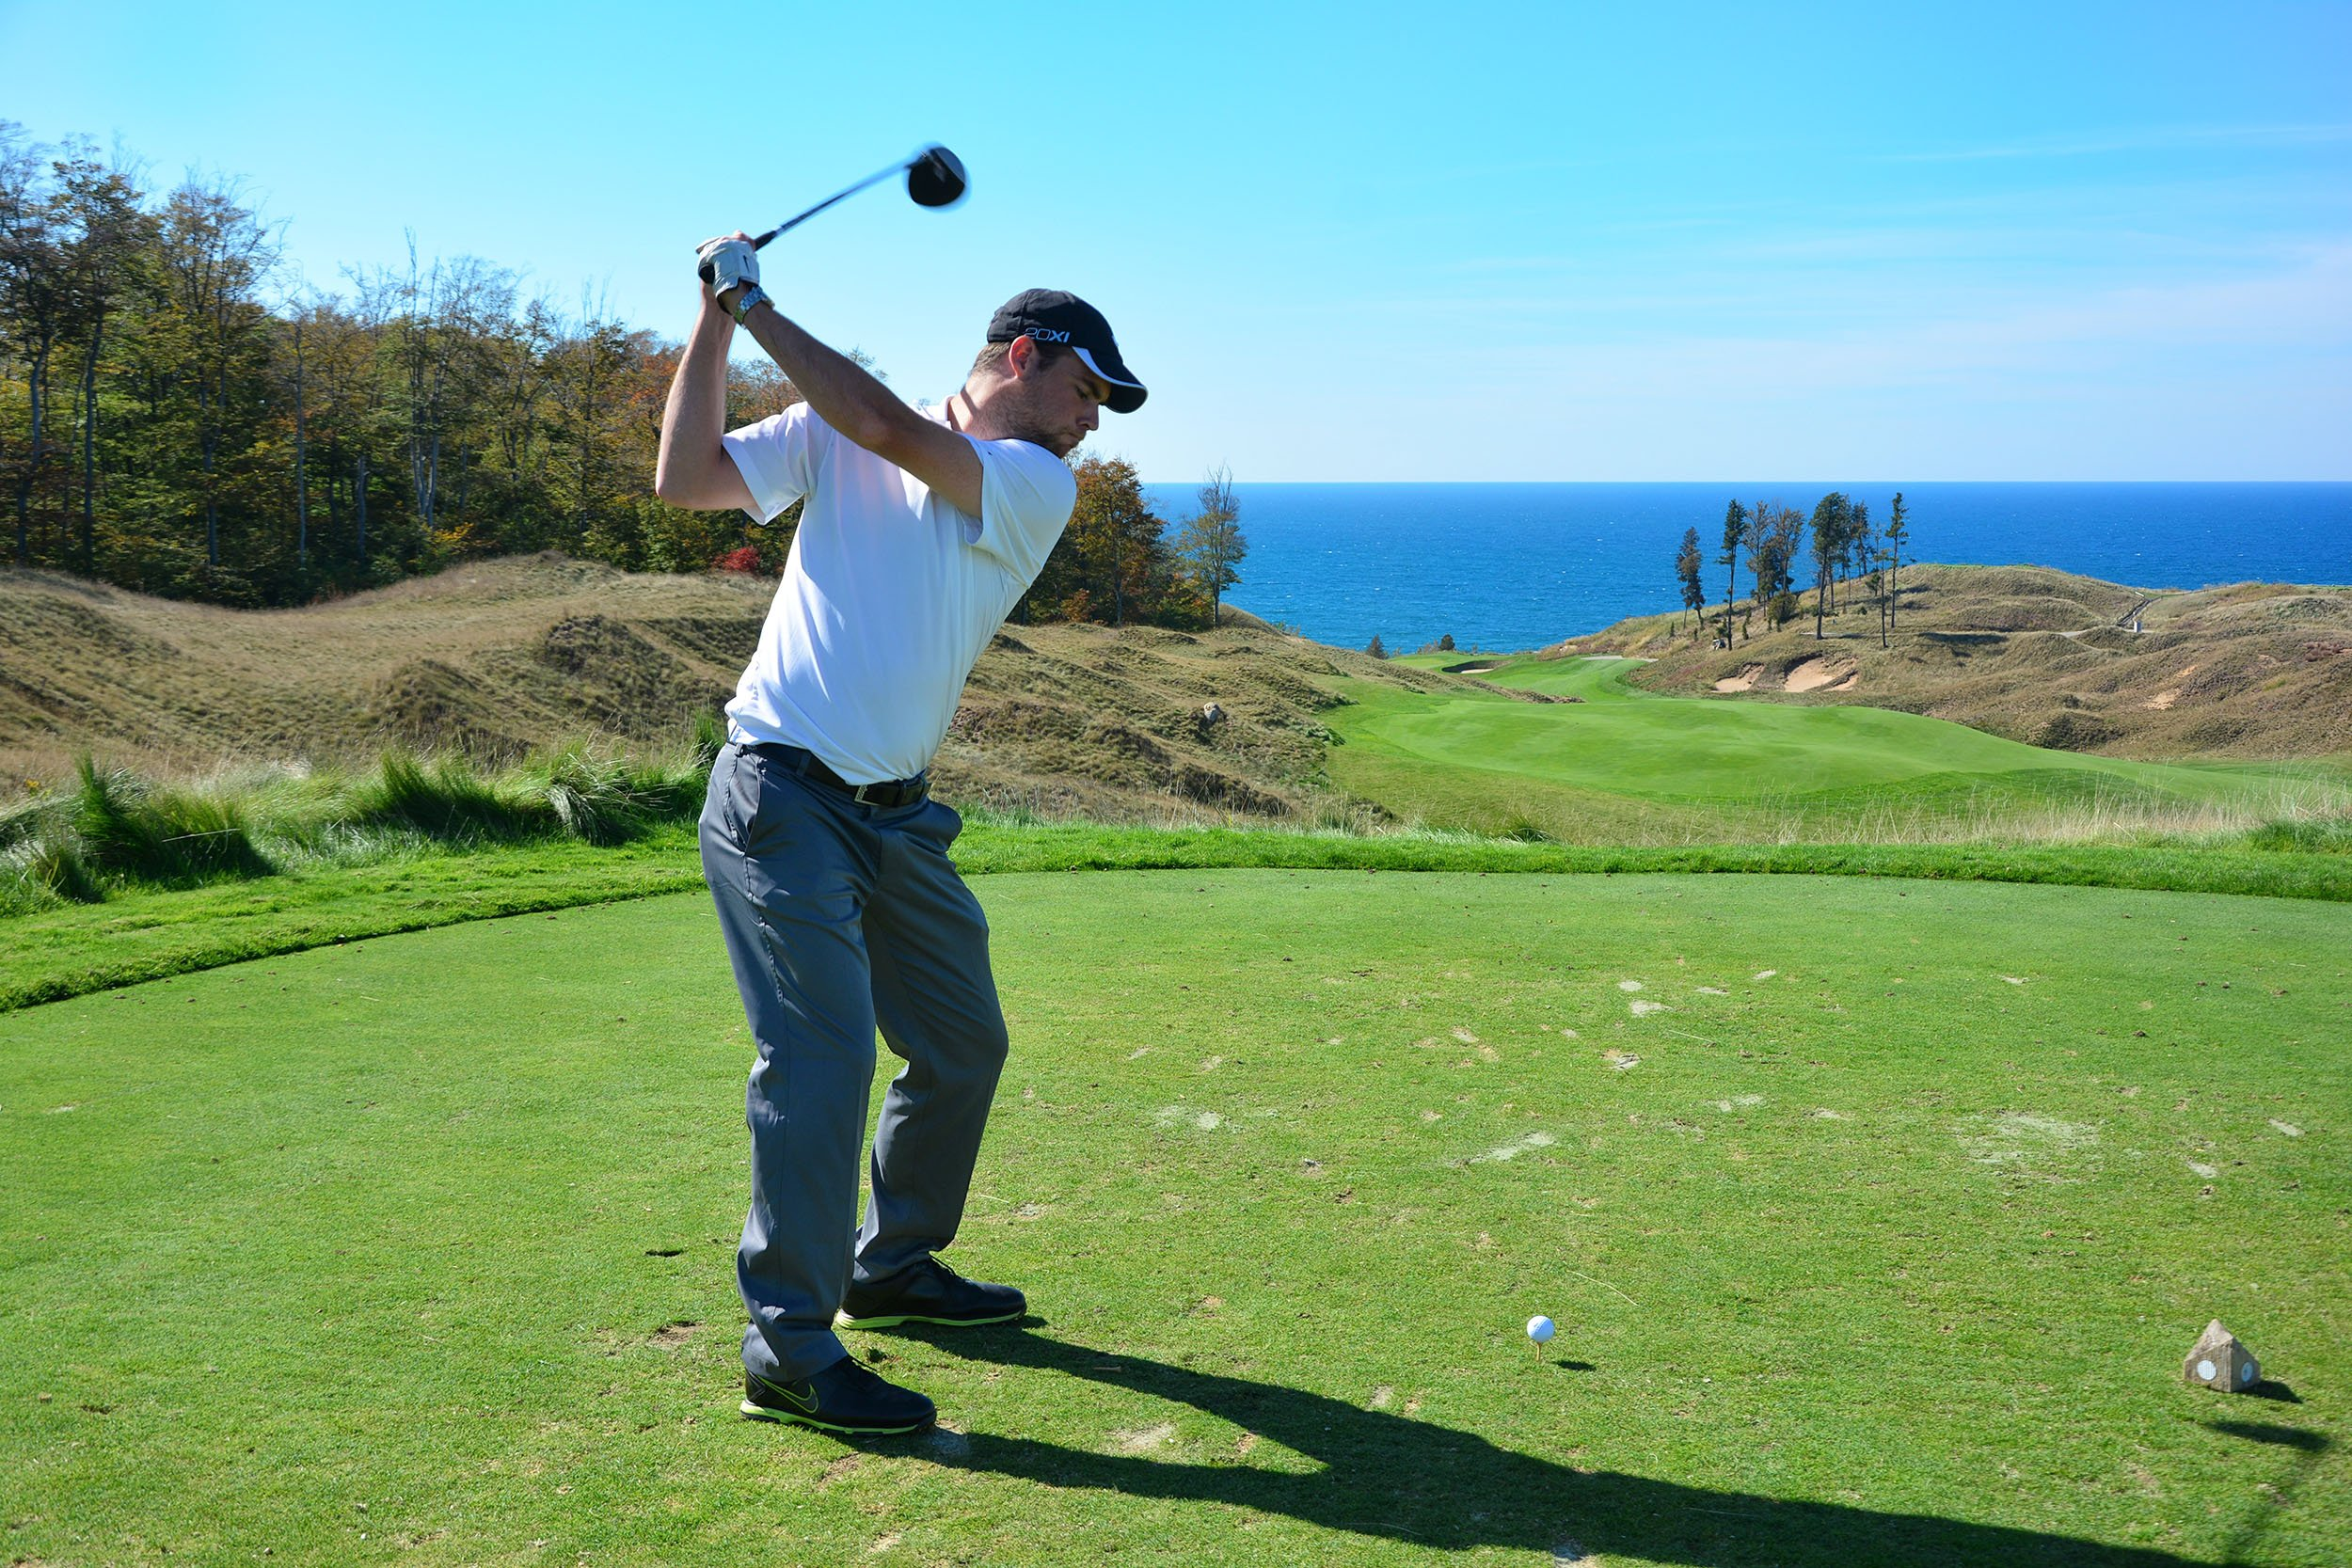 10 Business and Life Lessons I Learned from My Golf Road Trip